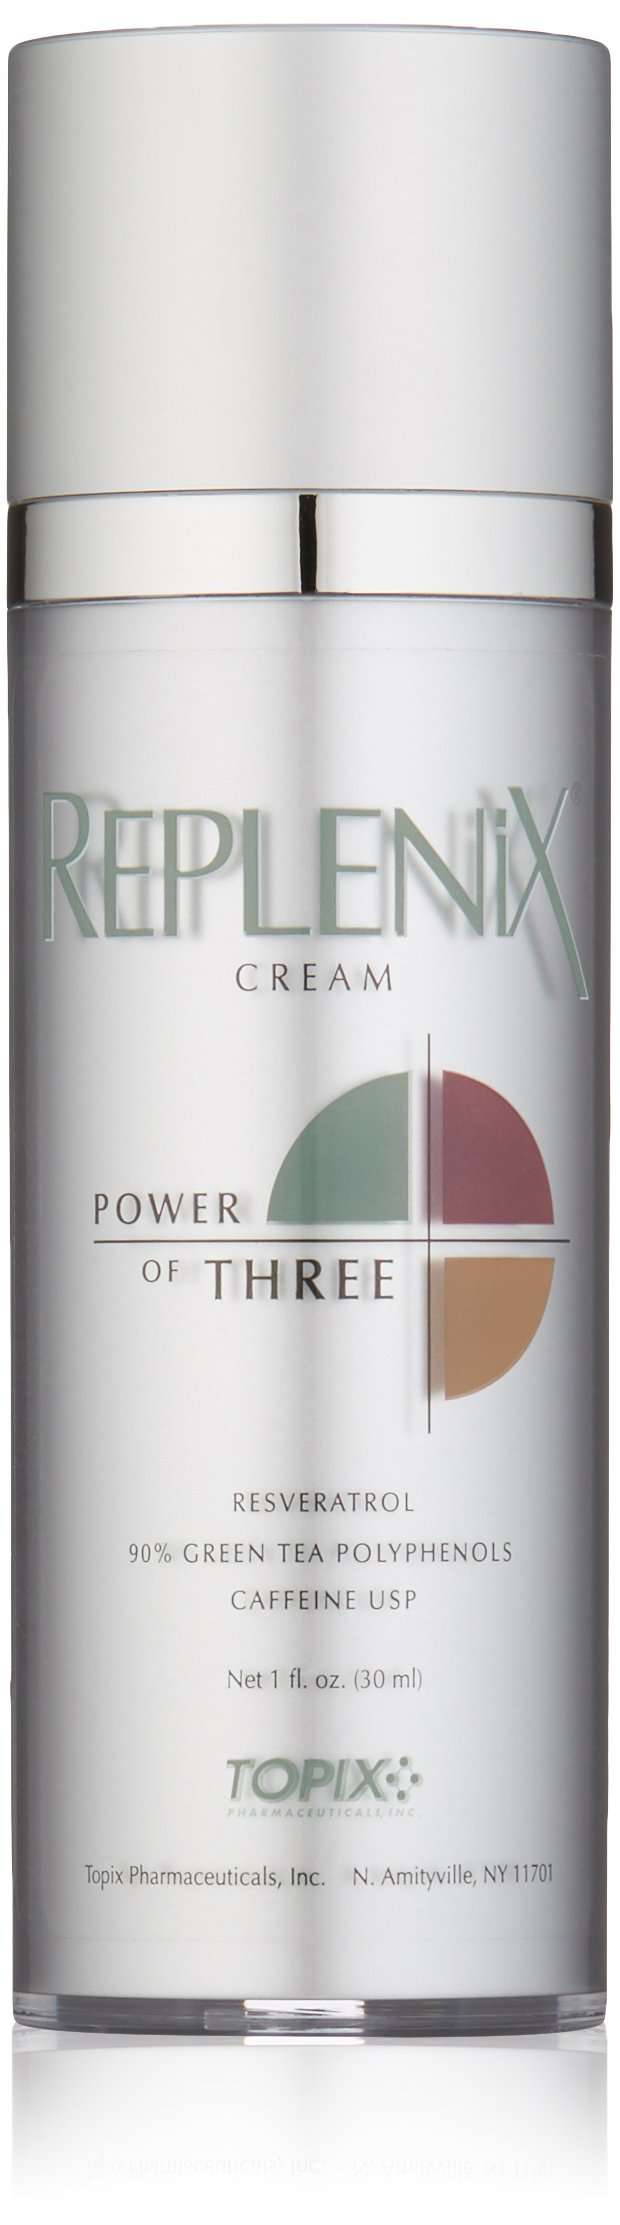 Replenix Power of Three Antioxidant Formula with Resveratrol by Replenix